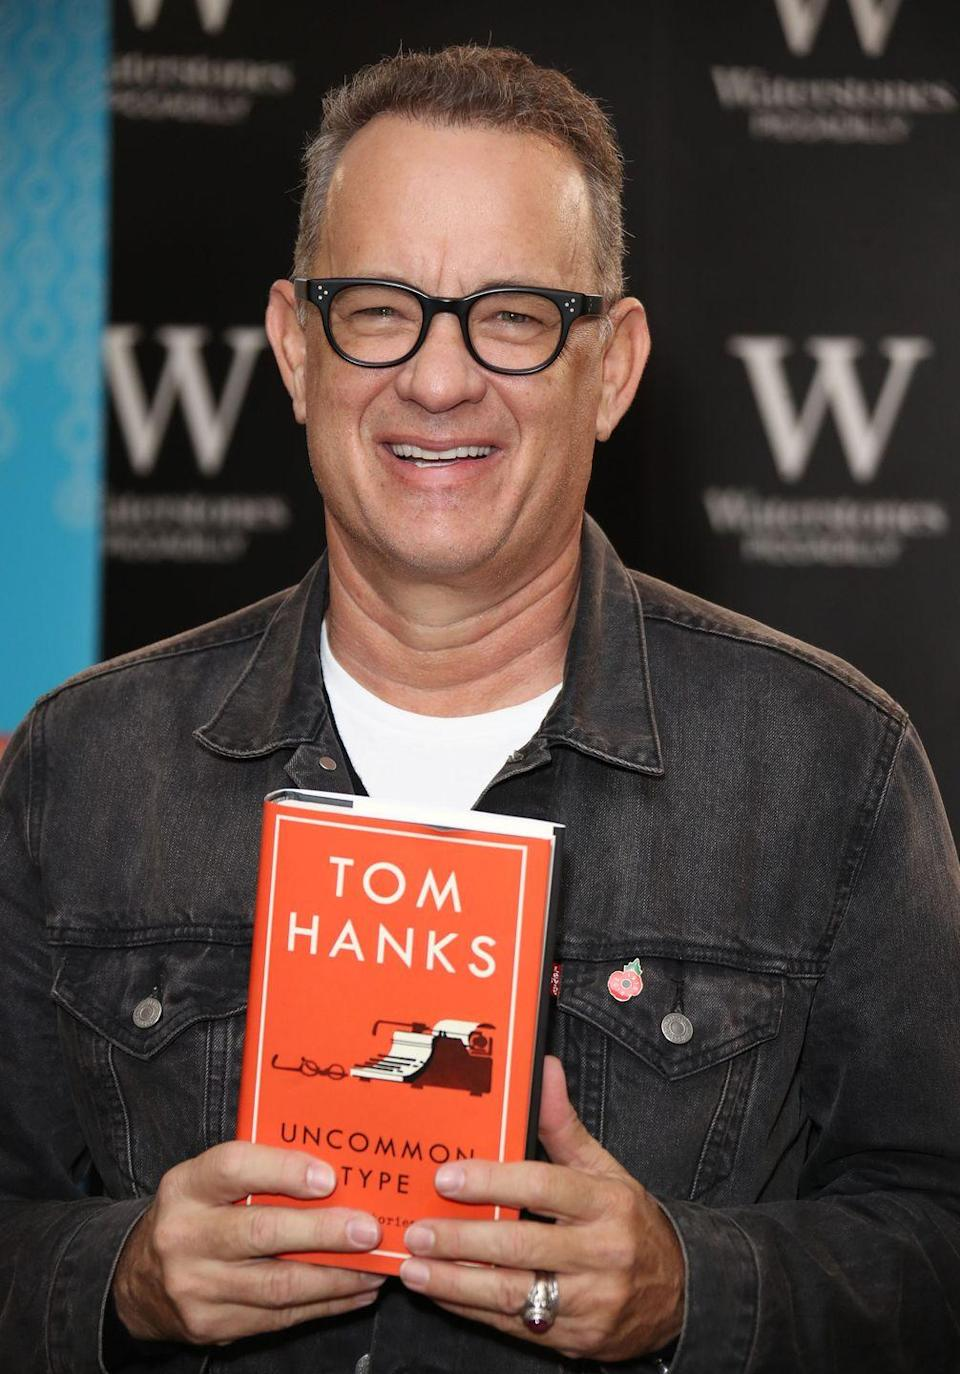 "<p>When you're Tom Hanks learning from acclaimed screenwriter Nora Ephron, it's the best learning from the best.</p><p>The Academy Award winner told <a href=""https://www.wbur.org/onpoint/2018/11/23/tom-hanks-movies-uncommon-type"" rel=""nofollow noopener"" target=""_blank"" data-ylk=""slk:WBUR"" class=""link rapid-noclick-resp"">WBUR</a> that there was a particular part of the <em>Sleepless in Seattle</em> script that he was ""really cranky about,"" so he brought it to Nora and fellow screenwriter Delia Ephron (Nora's sister). Before this, Tom had worked on screenplays, but since he wasn't ""coming up with the more detailed bones of structure of a story,"" he didn't count that as real writing. The <em>Forrest Gump</em> star ended up doing a major rewrite with Nora and Delia, and when the film was released, Nora told him, ""You wrote that.""</p><p>The rest, as they say, is history. Tom went to release a collection of short stories, <em>Uncommon Type</em>, in 2017.</p><p><a class=""link rapid-noclick-resp"" href=""https://go.redirectingat.com?id=74968X1596630&url=https%3A%2F%2Fwww.gettyimages.com%2Fdetail%2Fnews-photo%2Ftom-hanks-signs-copies-of-his-new-book-uncommon-type-at-news-photo%2F869300482%3Fadppopup%3Dtrue&sref=https%3A%2F%2Fwww.menshealth.com%2Fentertainment%2Fg34385633%2Fcelebrities-who-wrote-fiction-books%2F"" rel=""nofollow noopener"" target=""_blank"" data-ylk=""slk:Buy the Book"">Buy the Book</a></p>"